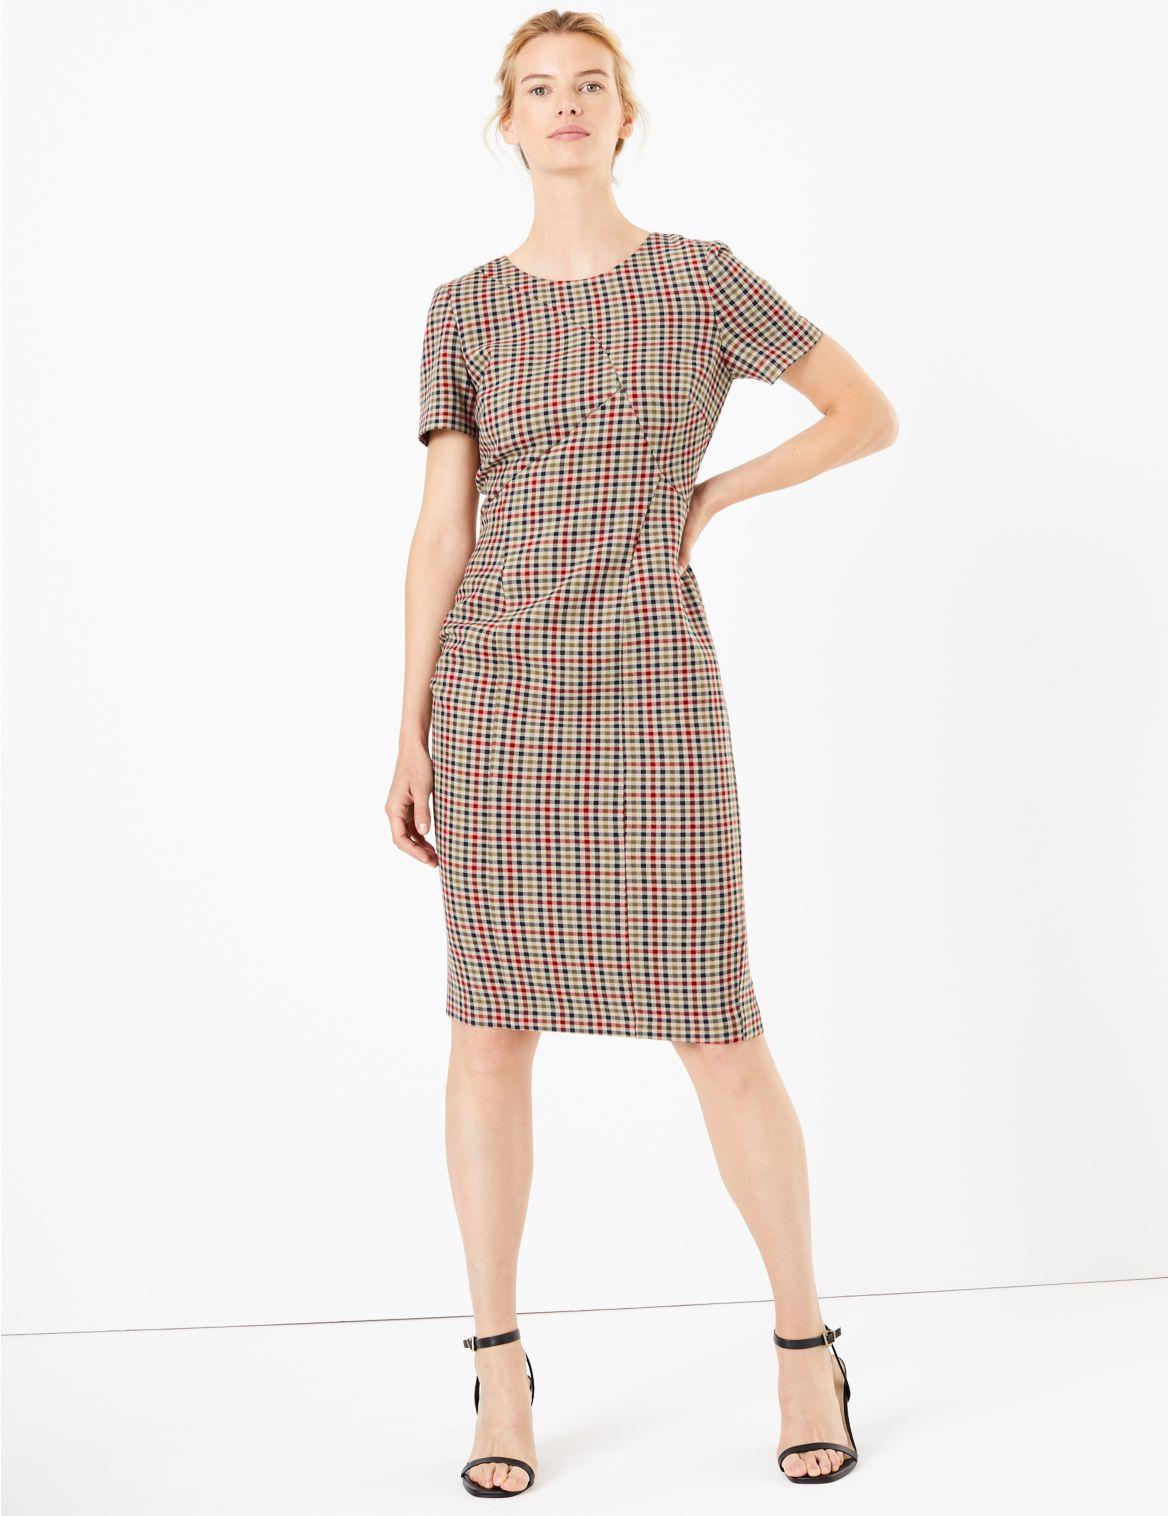 Marks and spencer bodycon dresses for women